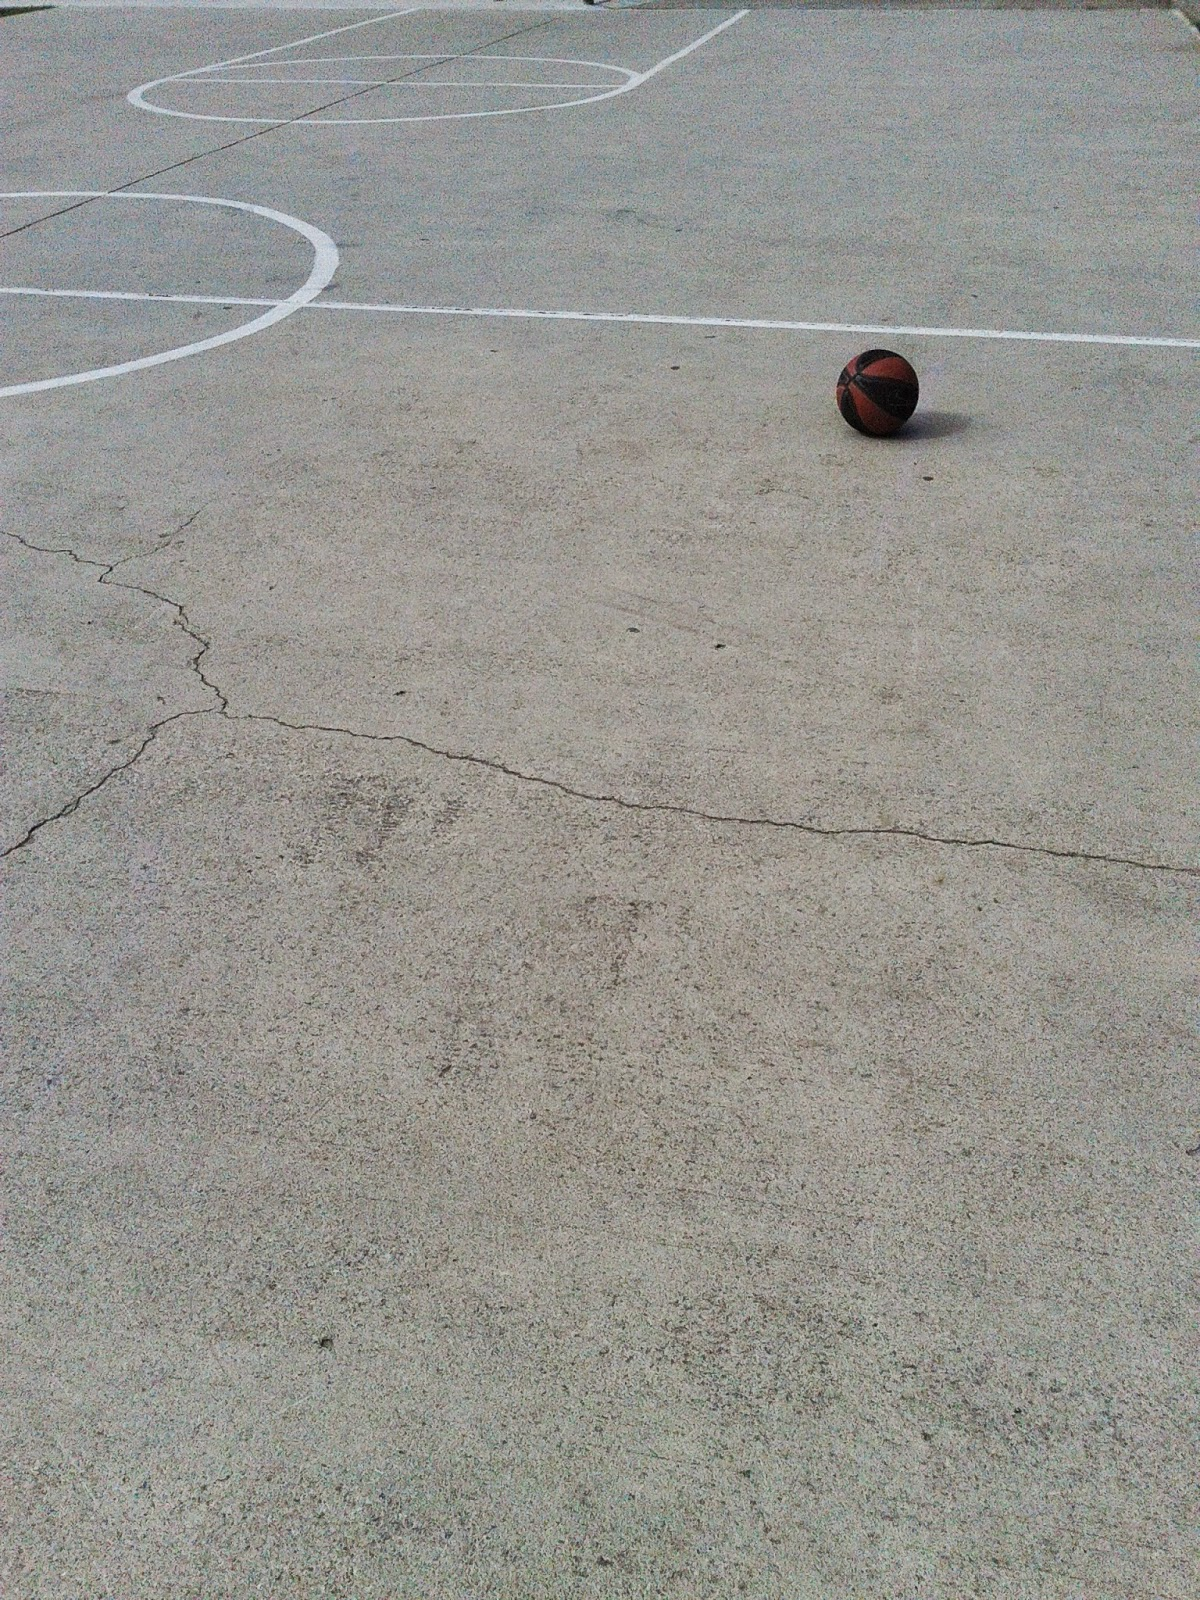 Lone basketball on an outdoor court